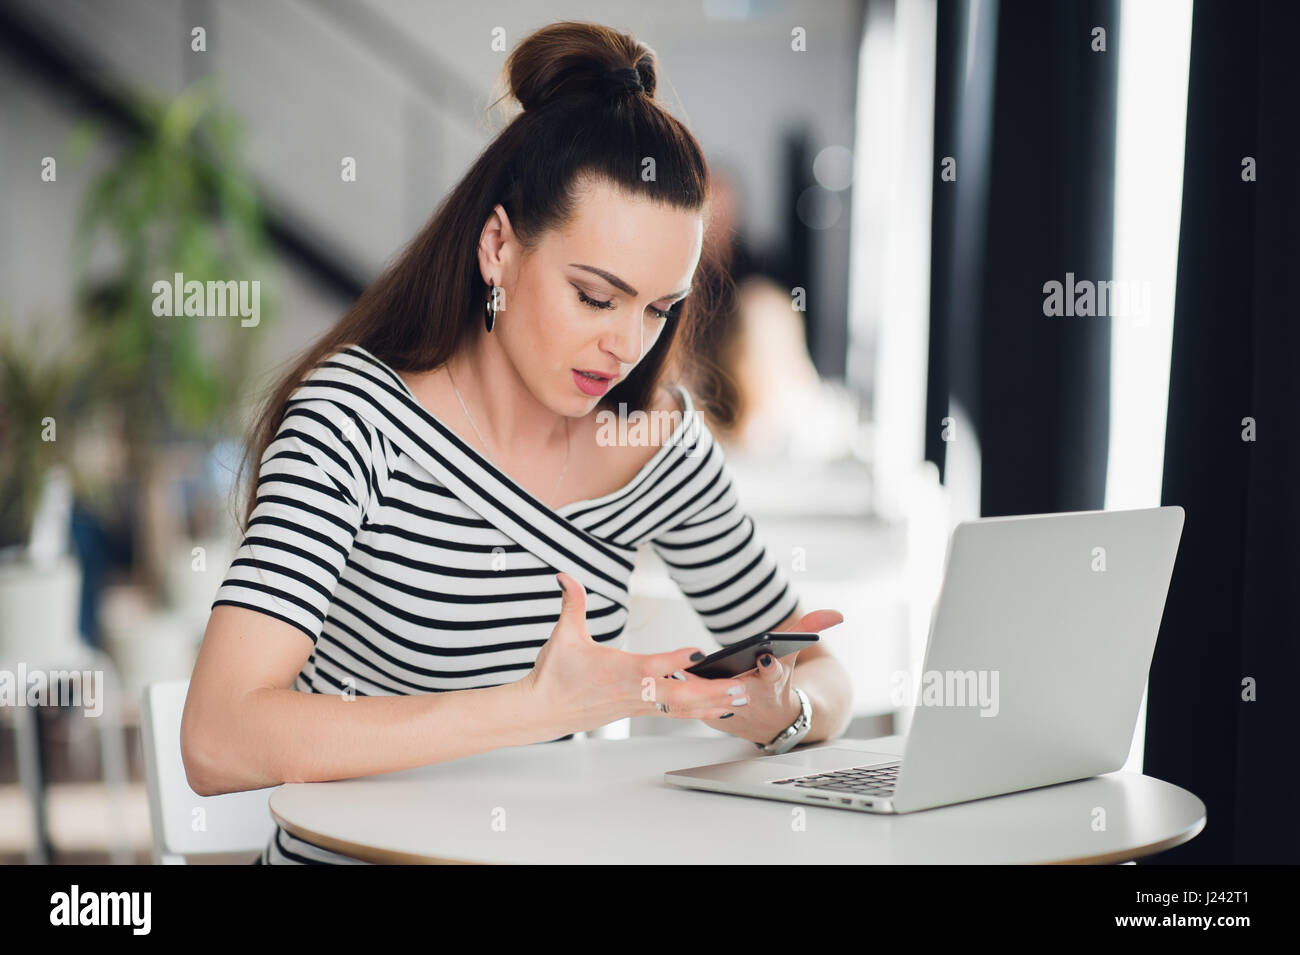 Frustrated office worker on the phone holding stock photo image - Disappointed Businesswoman Looking At Business Results On Phone Screen In A Cafe During Lunch Break